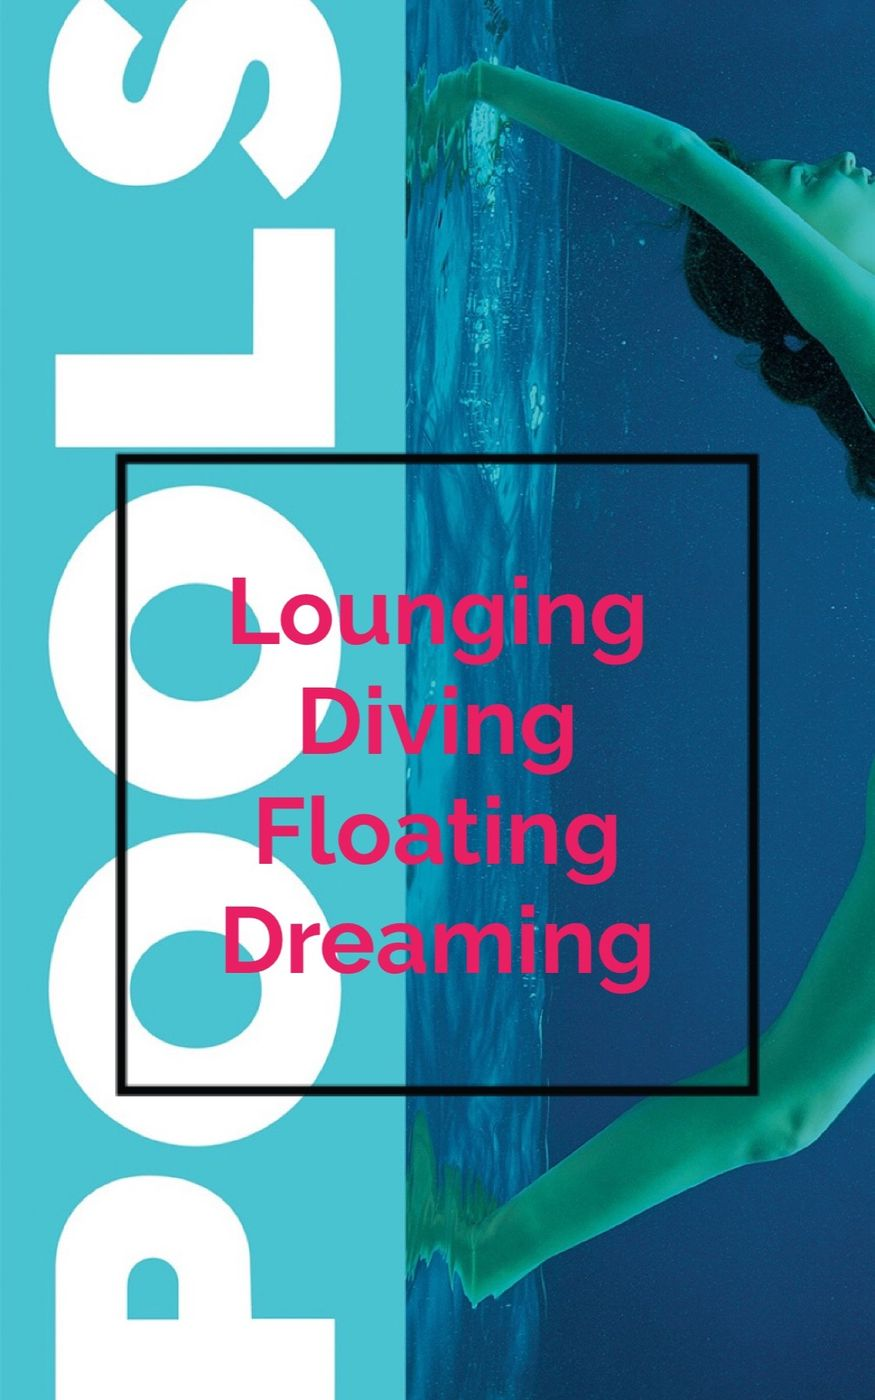 A new photo book pays homage to the art of the swimming pool bringing together photography works by everyone from Martin Parr to Martine Franck, Lou Stoppard's new book picturing life at the pool is the quarantine inspiration we all need right now!